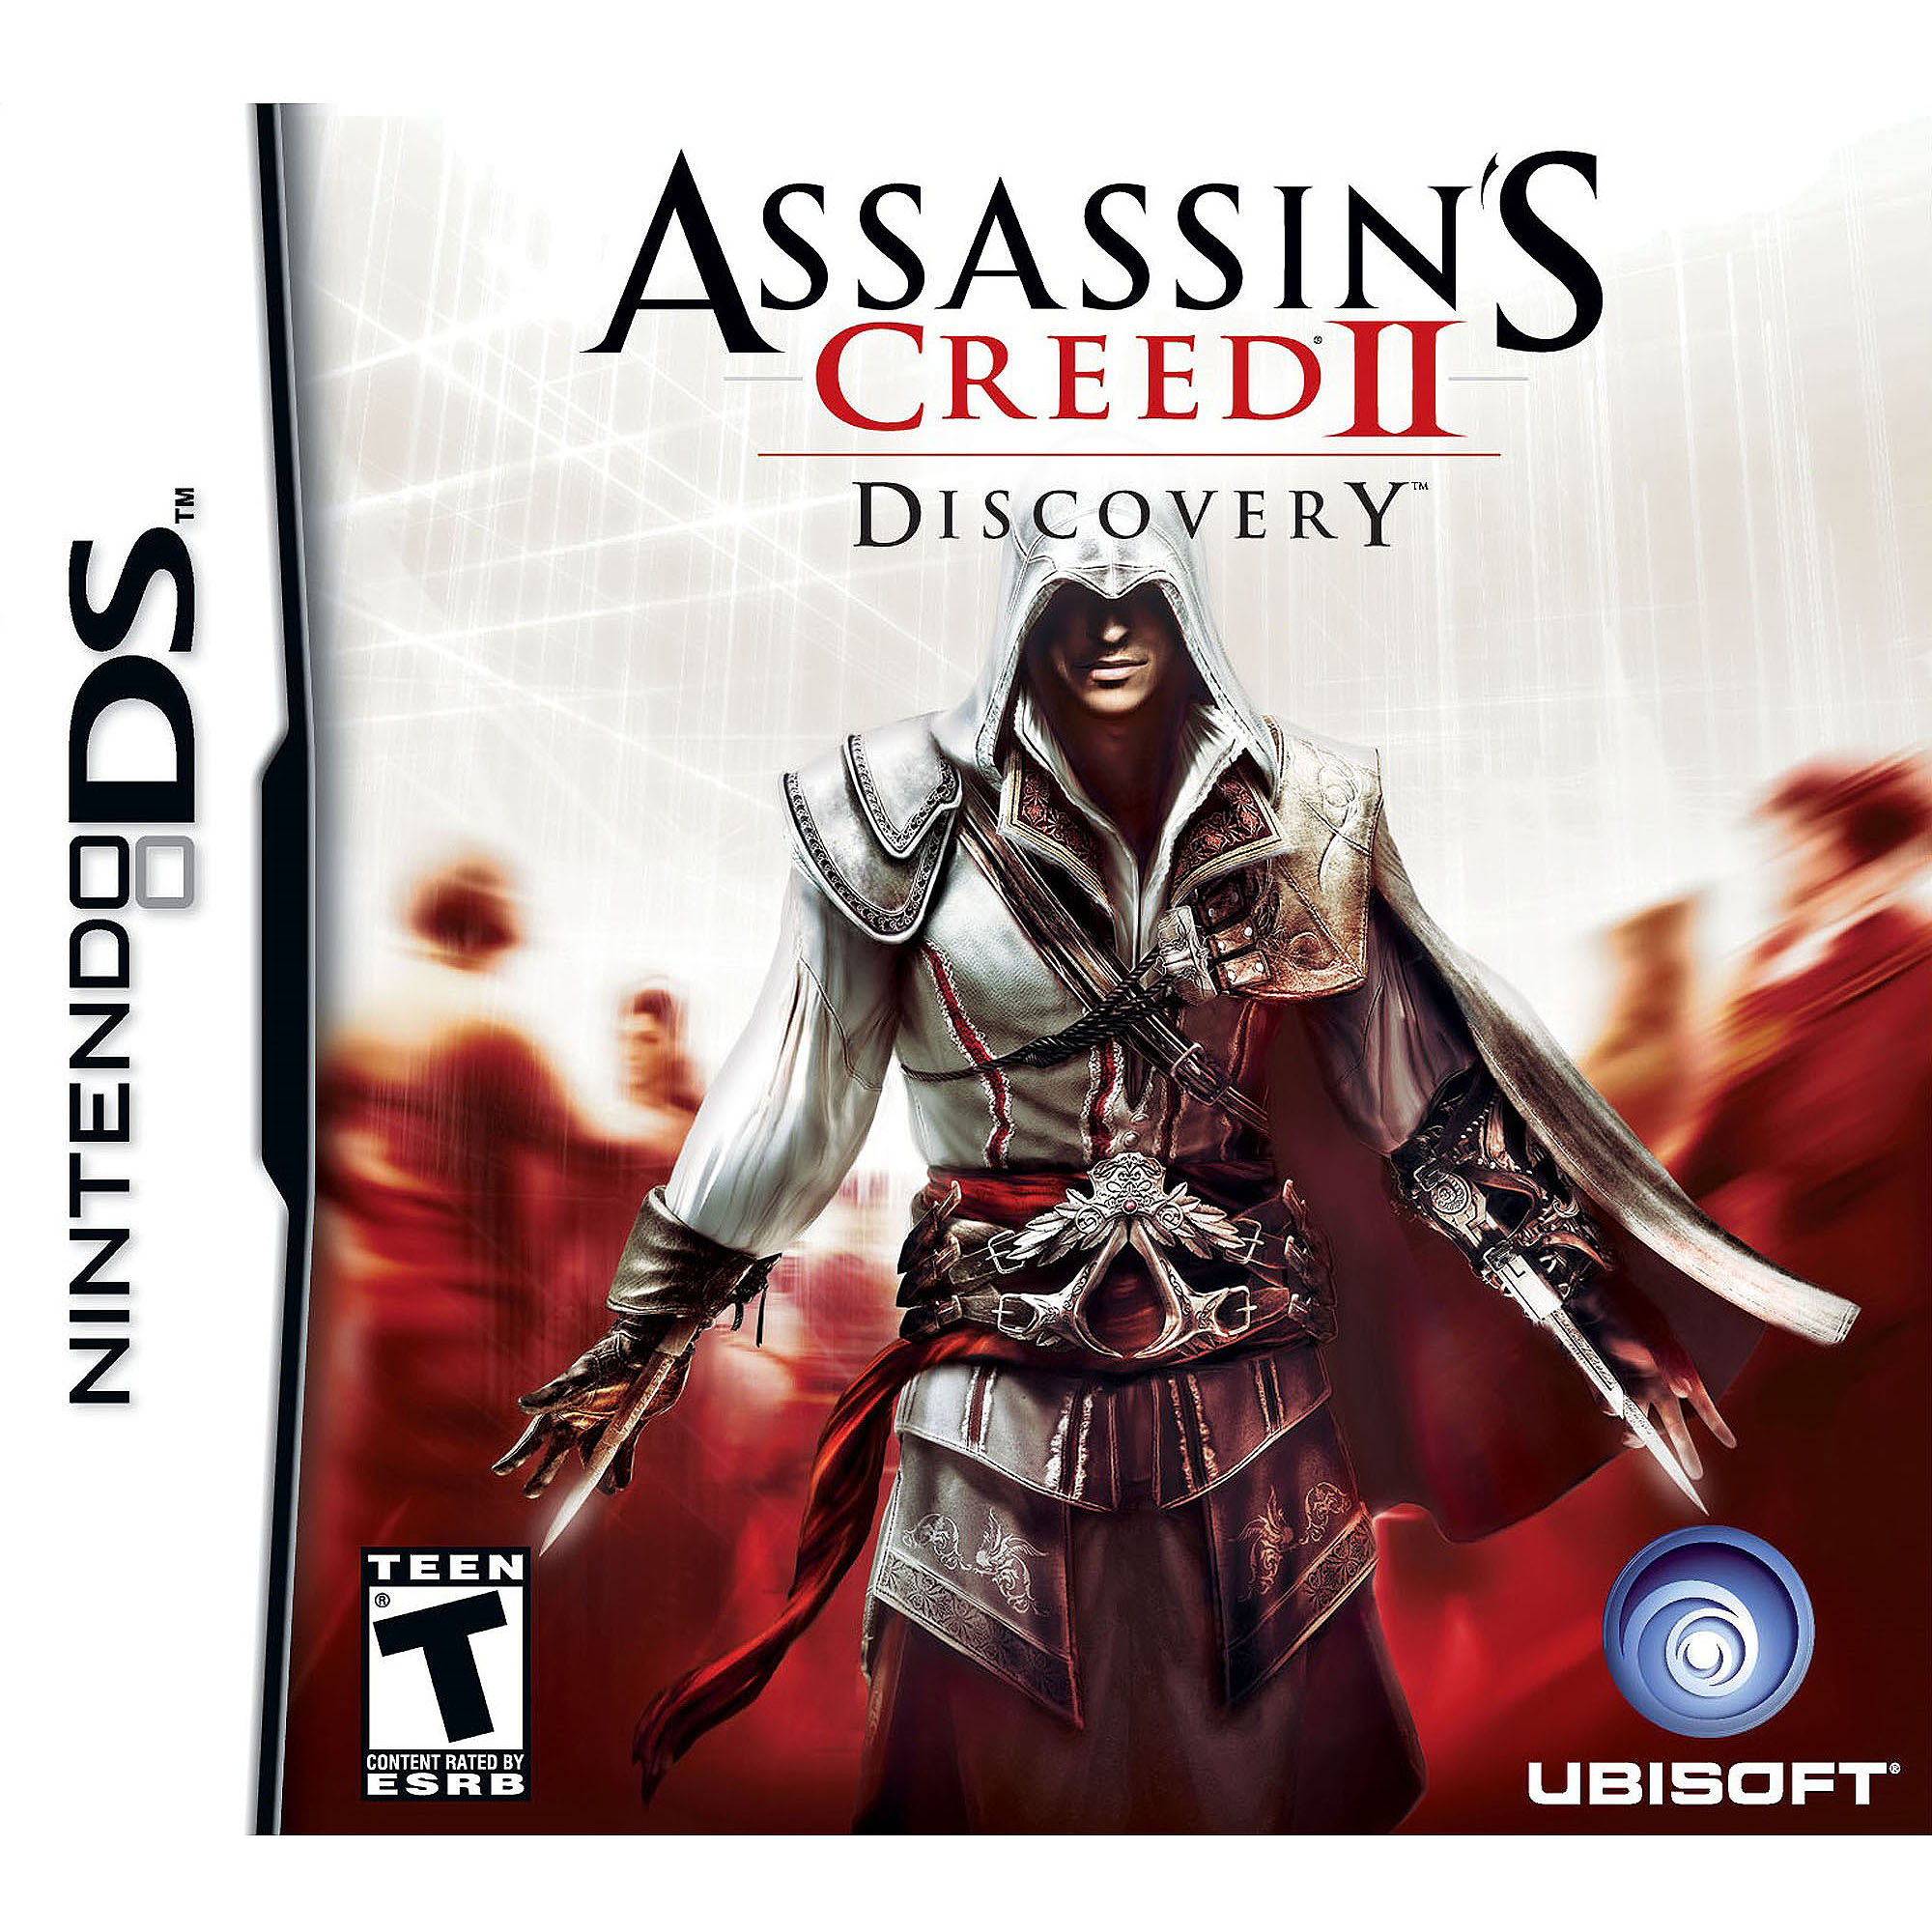 Assassins Creed 2 Discovery - Nintendo DS